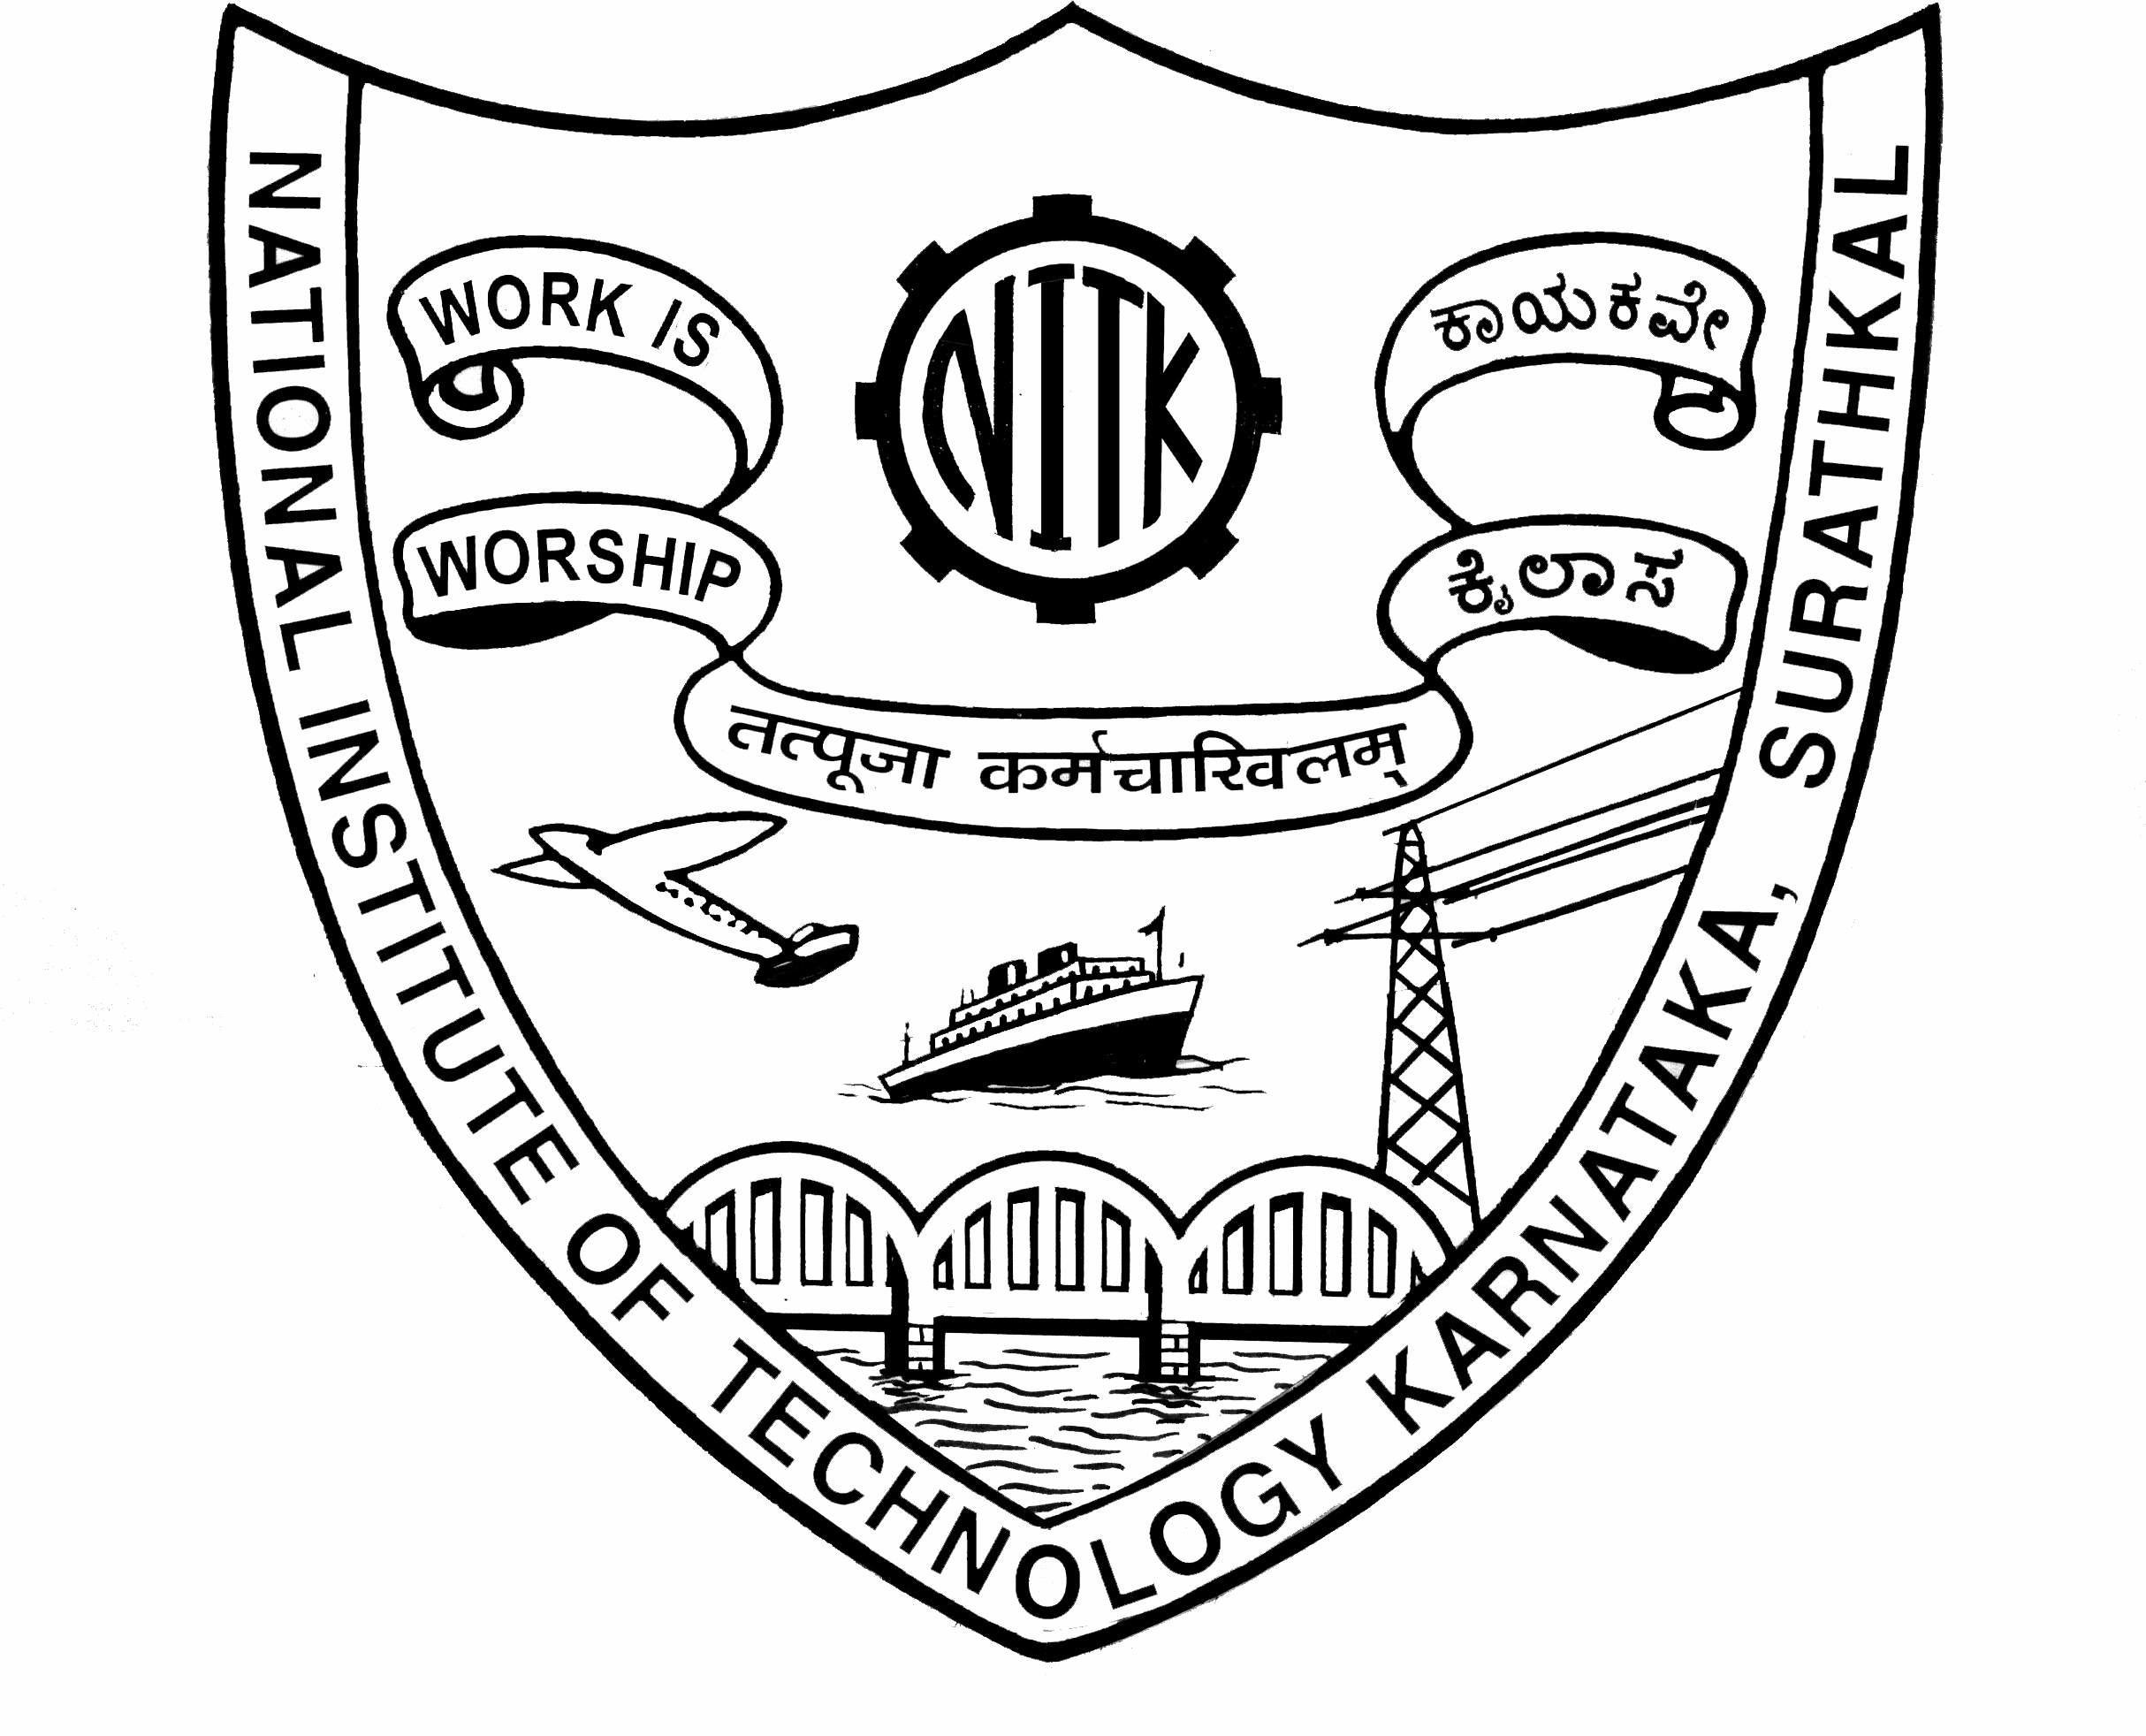 National Institute of Technology, Surathkal logo